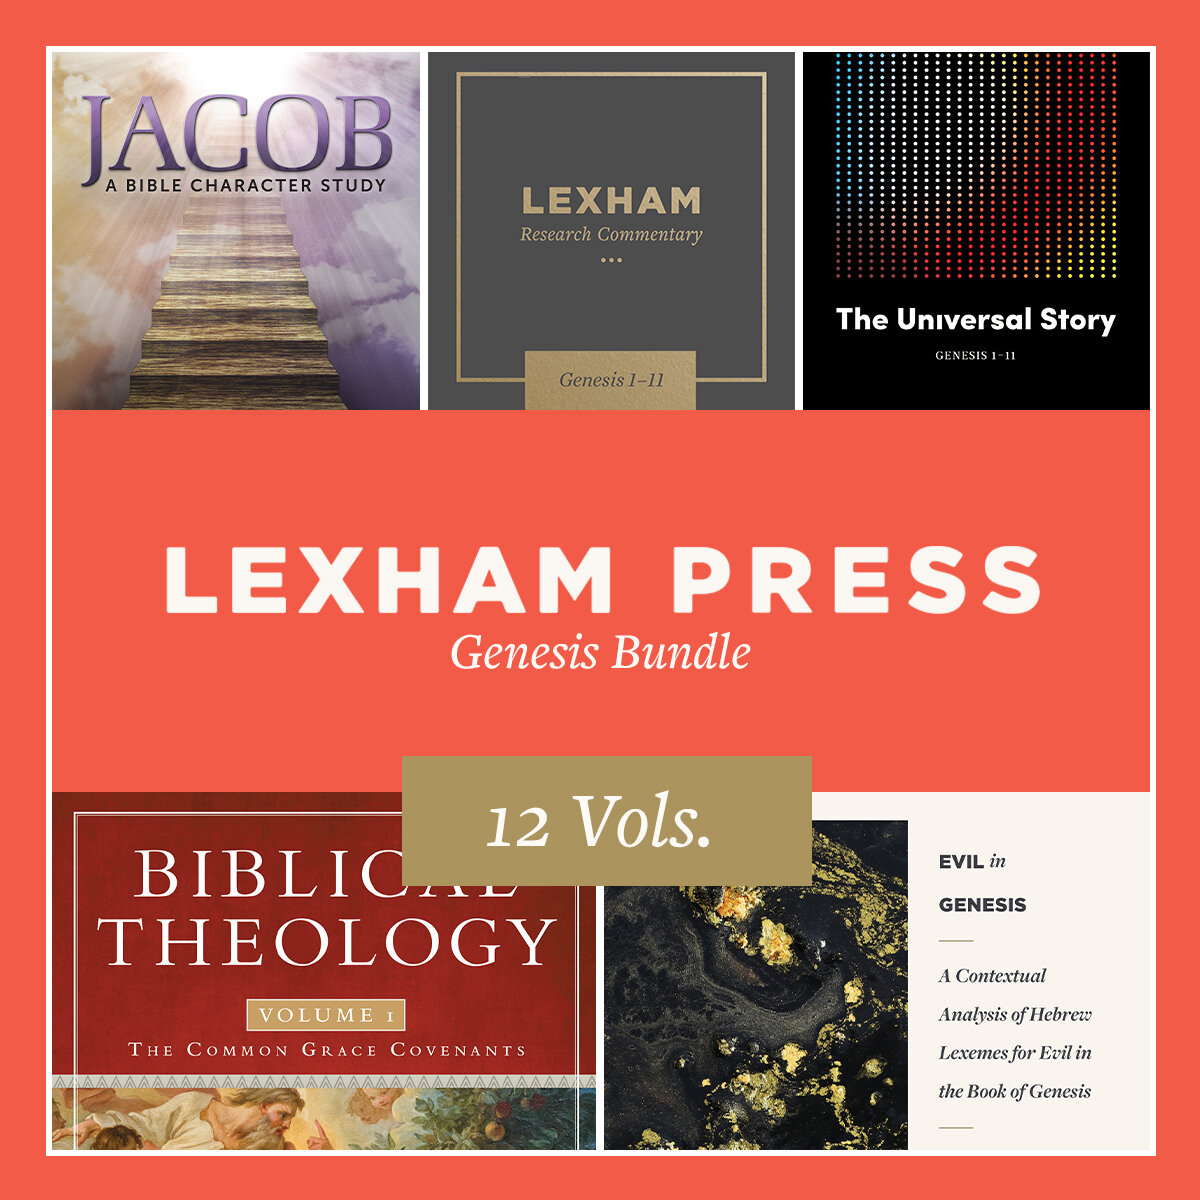 Lexham Press Genesis Bundle (12 vols.)